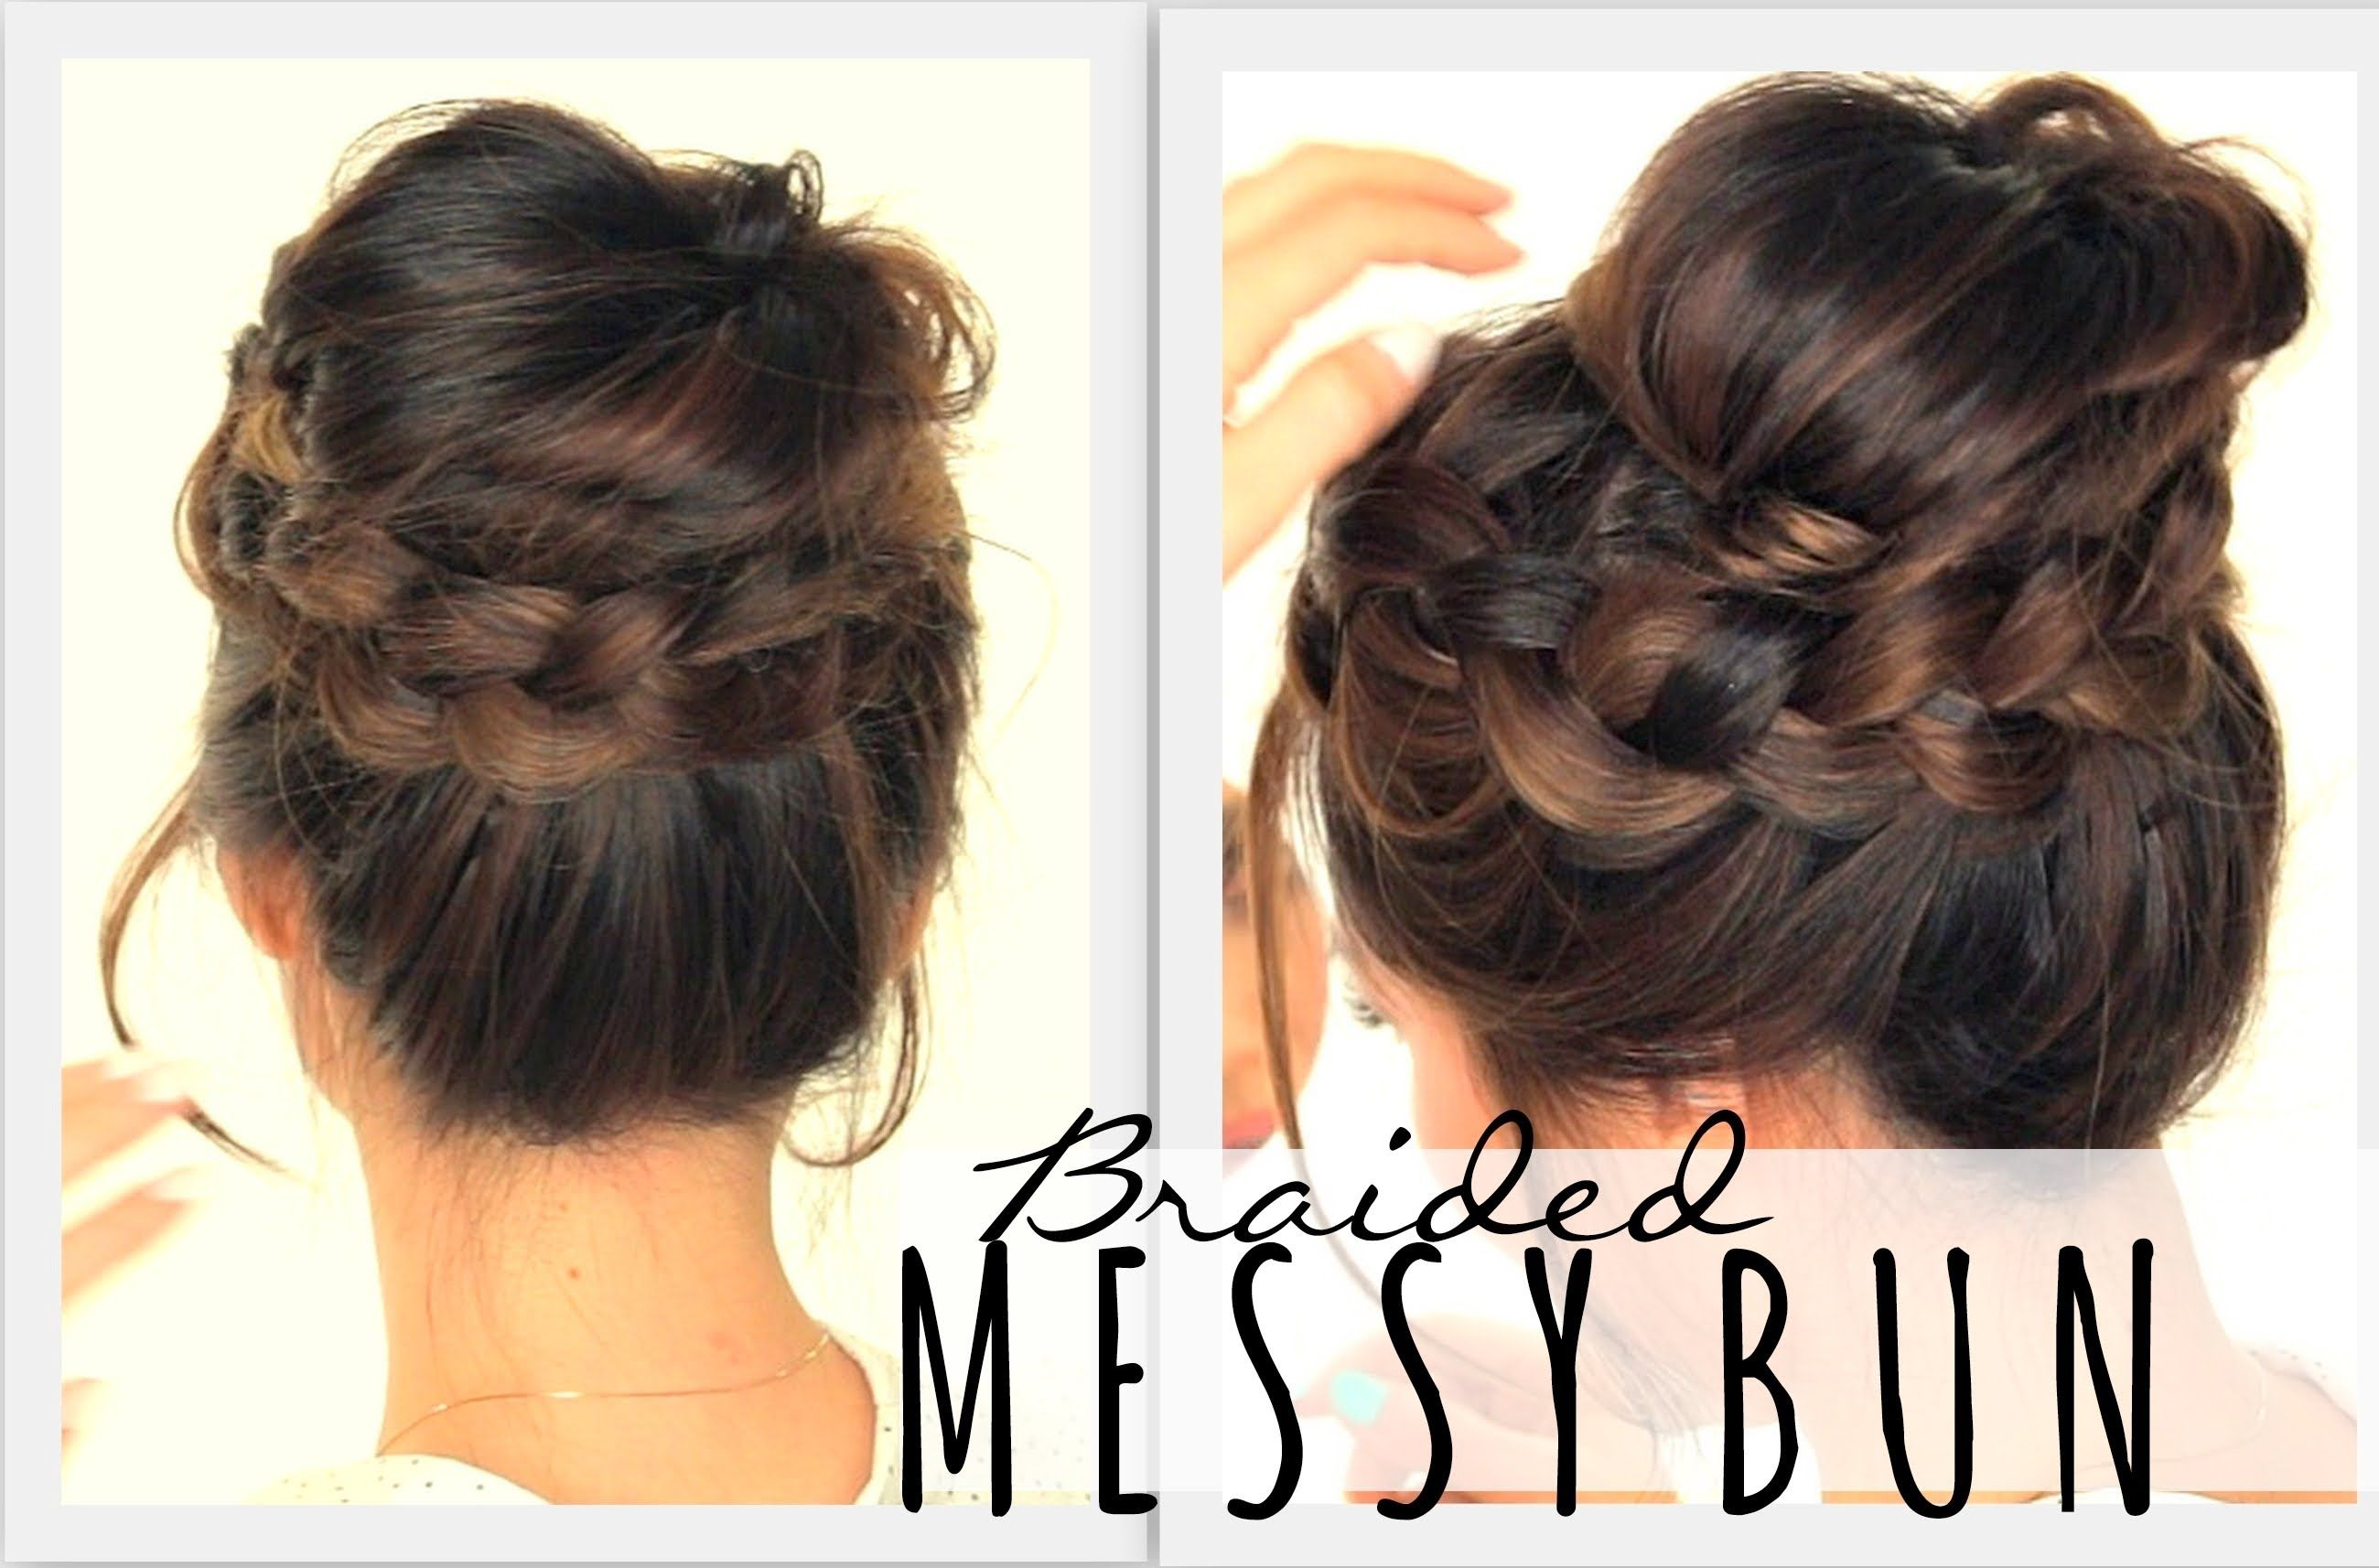 DIY Simple Braided Upstyle For Second Day Hair recommend